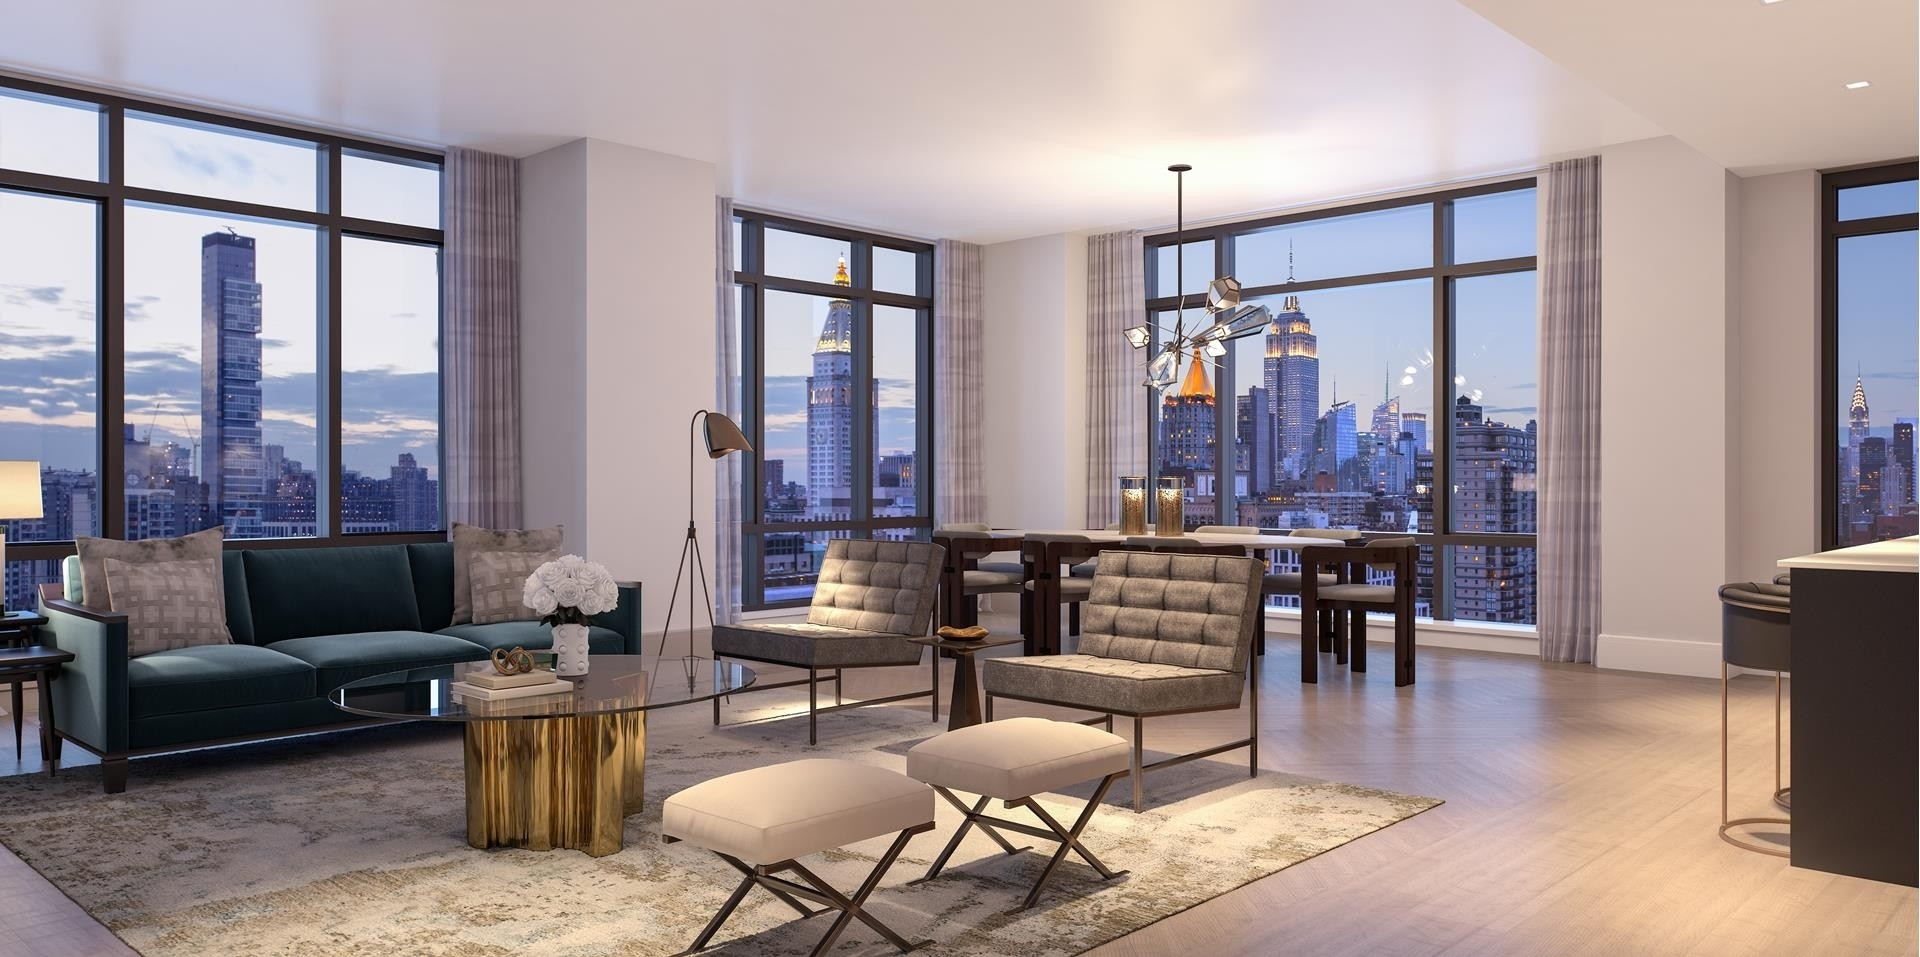 5. Condominiums for Sale at Gramercy Square, 215 East 19th St, 17A Gramercy Park, New York, NY 10003